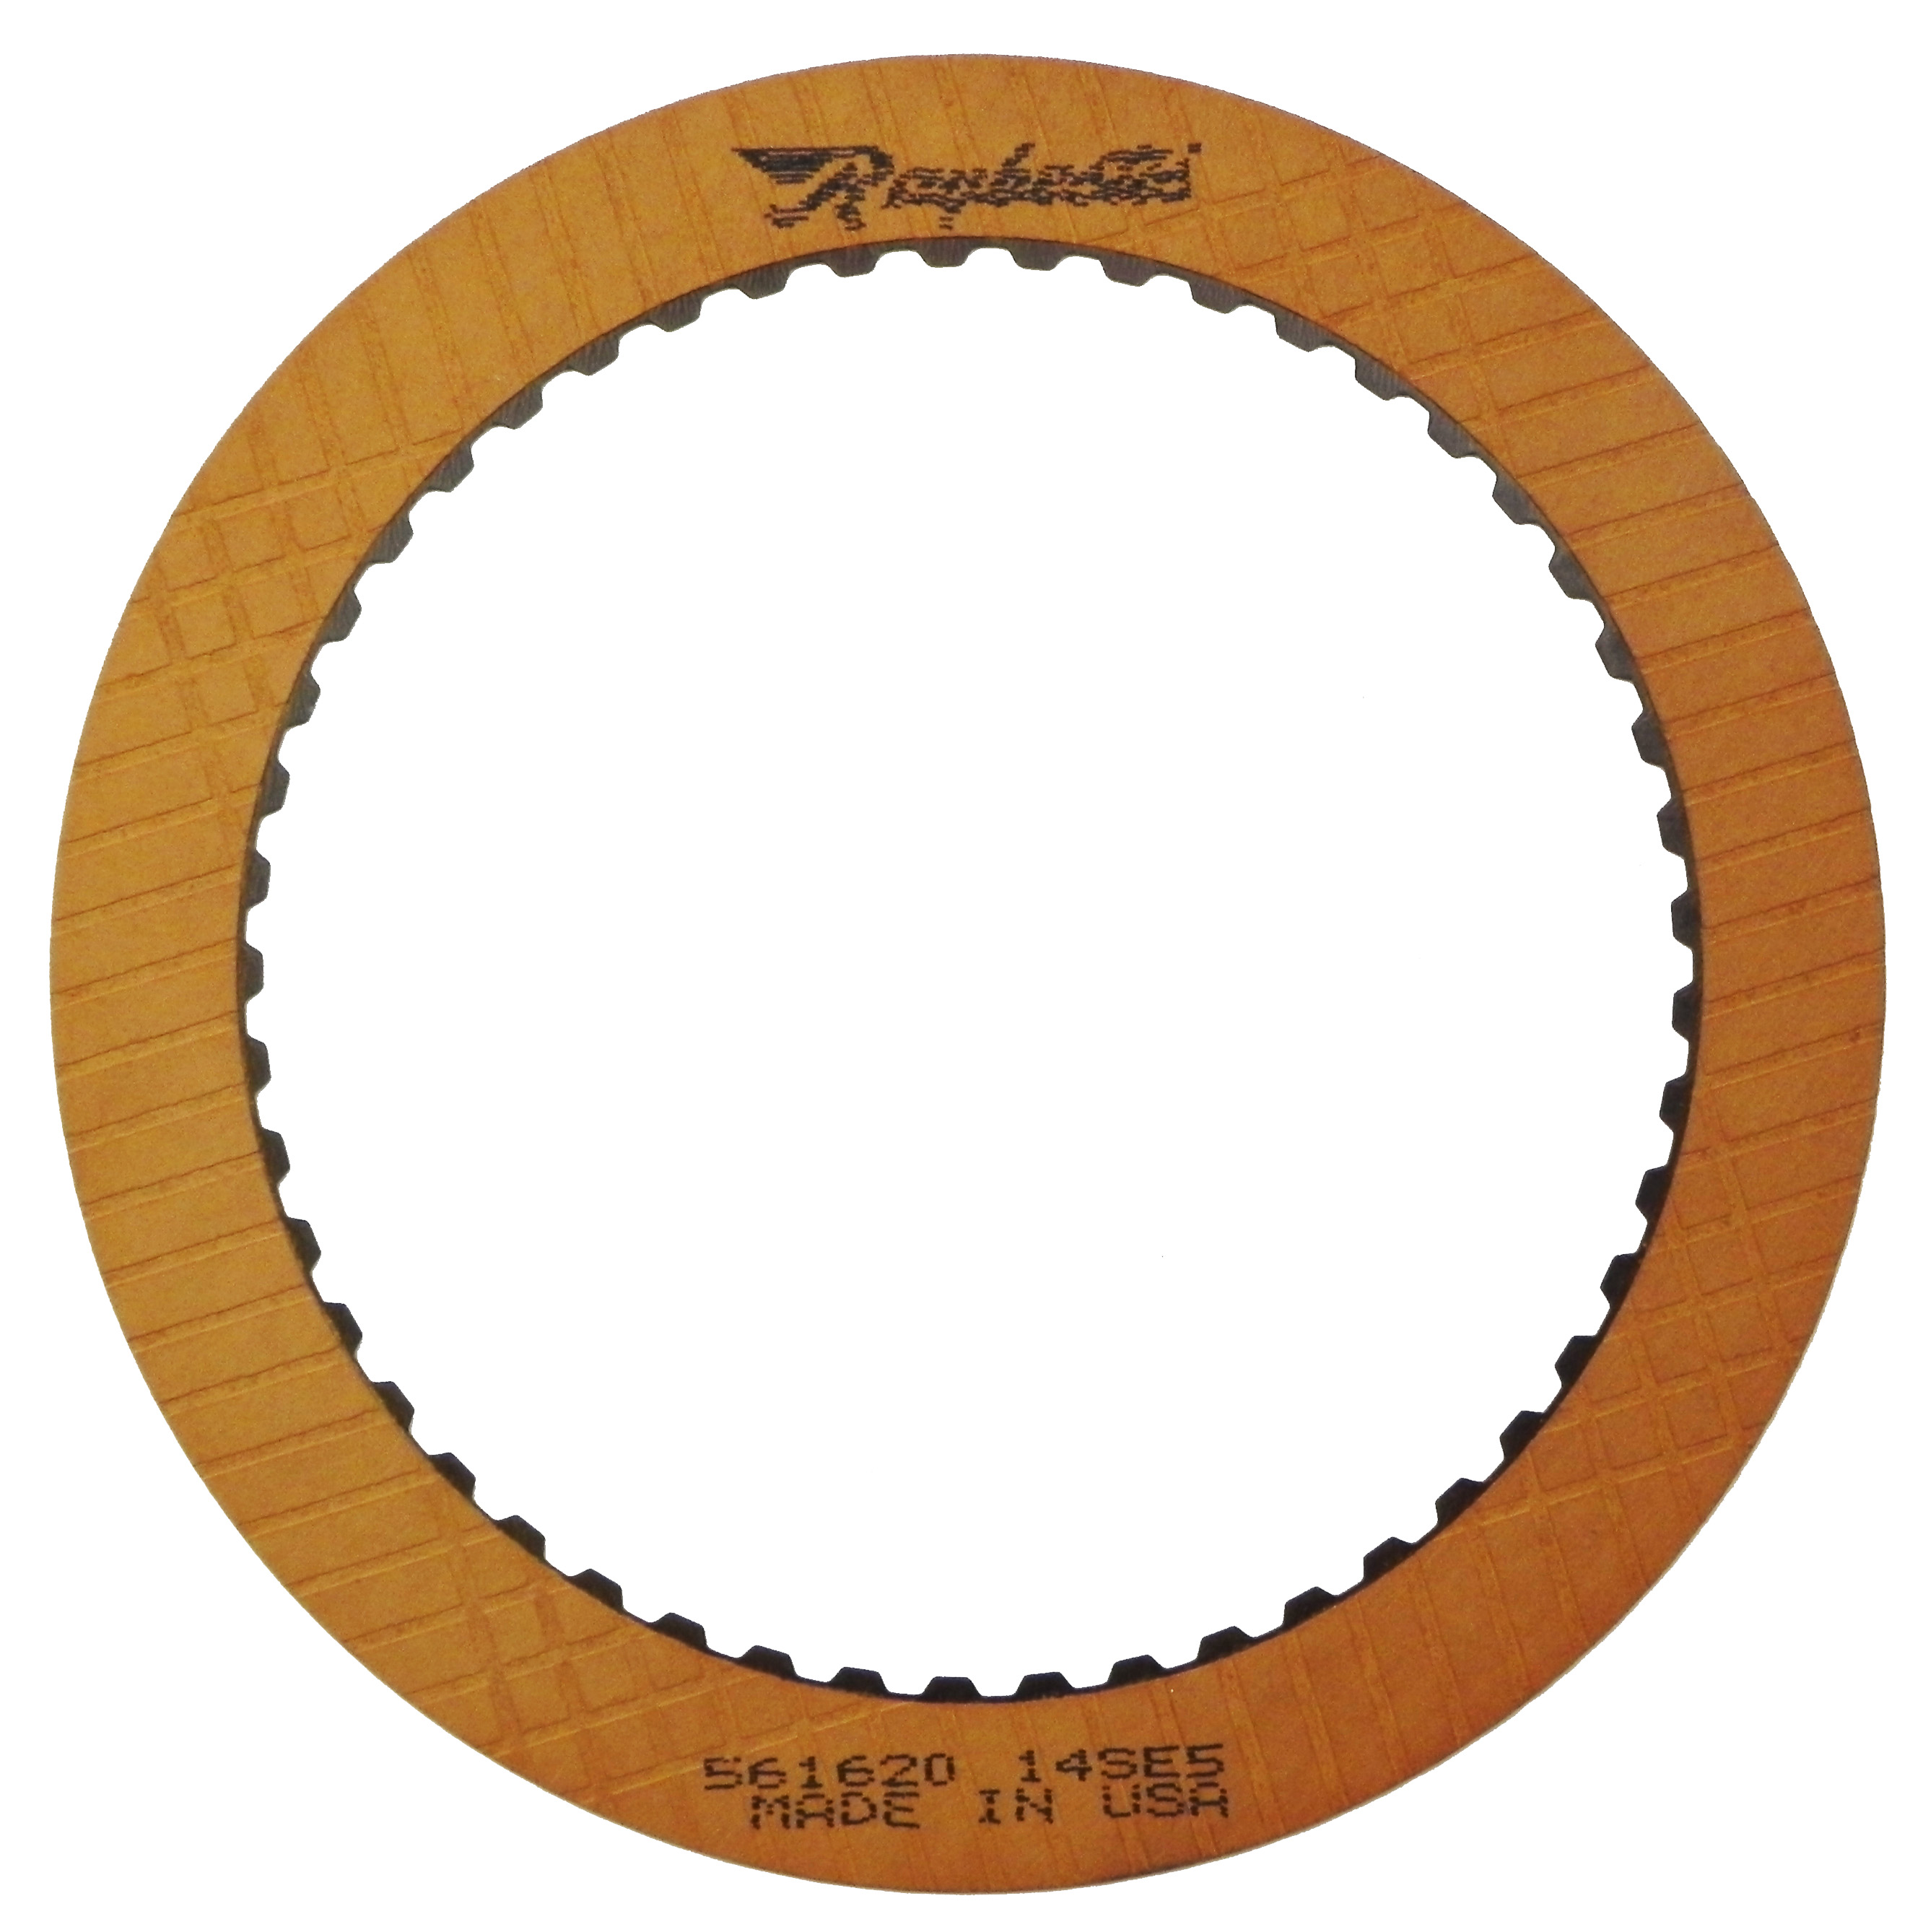 AXOD, AXOD-E, AX4N, AX4S OE Replacement Friction Clutch Plate